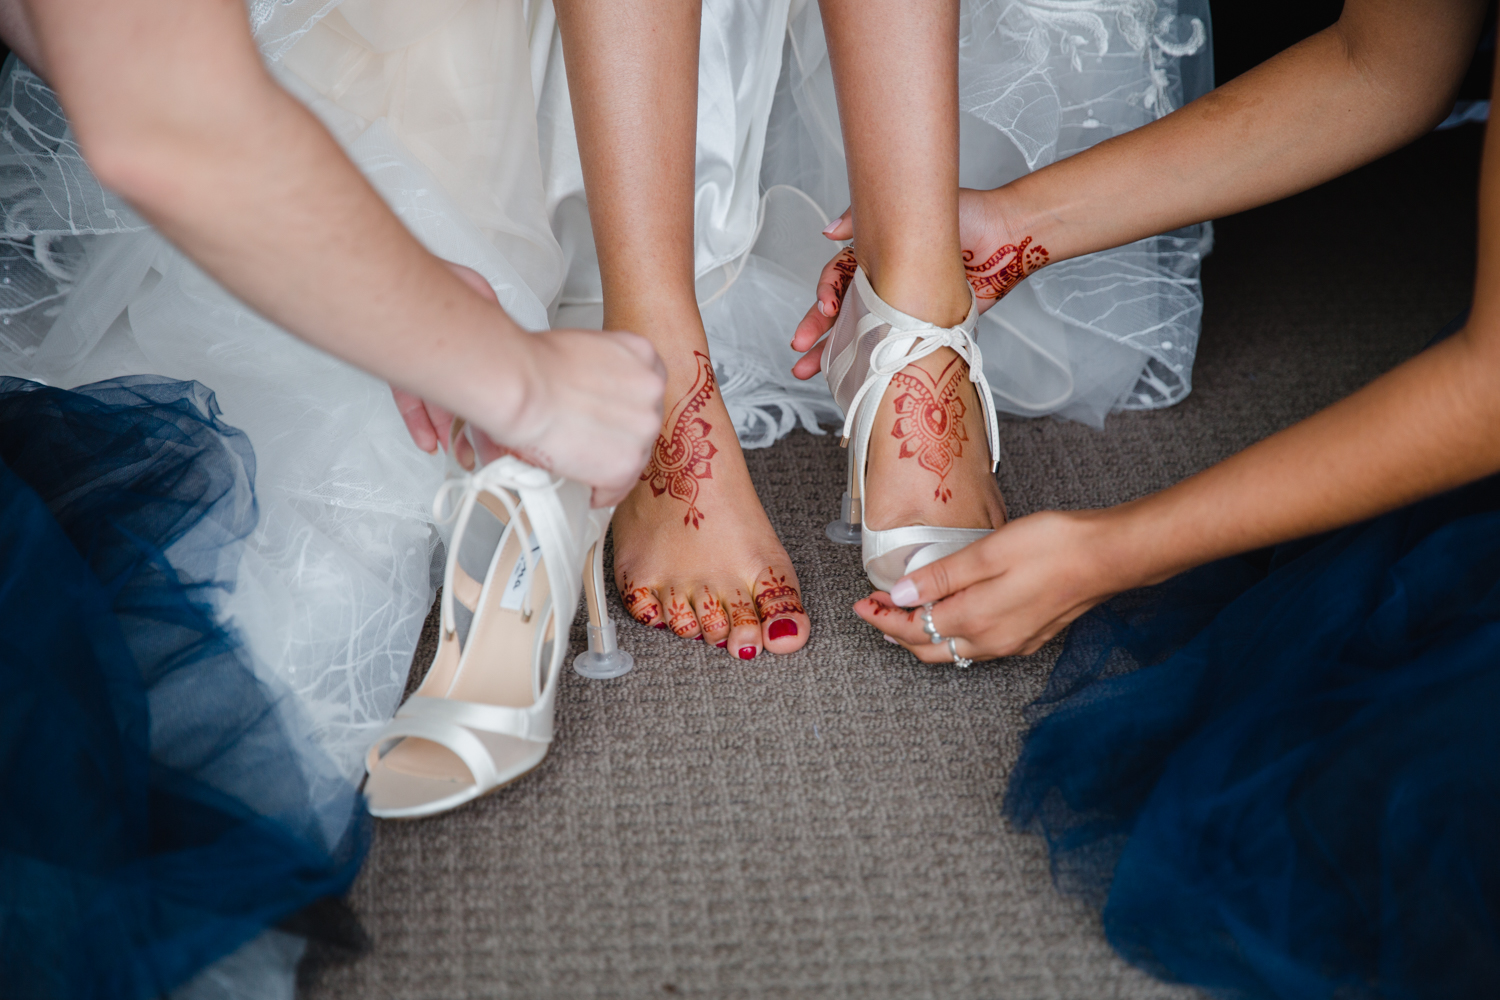 An artistic image of a Bride having her shoes put on by her bride's maids. The Bride's henna is shown beautifully in this image as well. This image was taken by Mala Photography, an Auckland based wedding photographer. The wedding was at Markovina Vineyard Estate In Kumeu, Auckland.